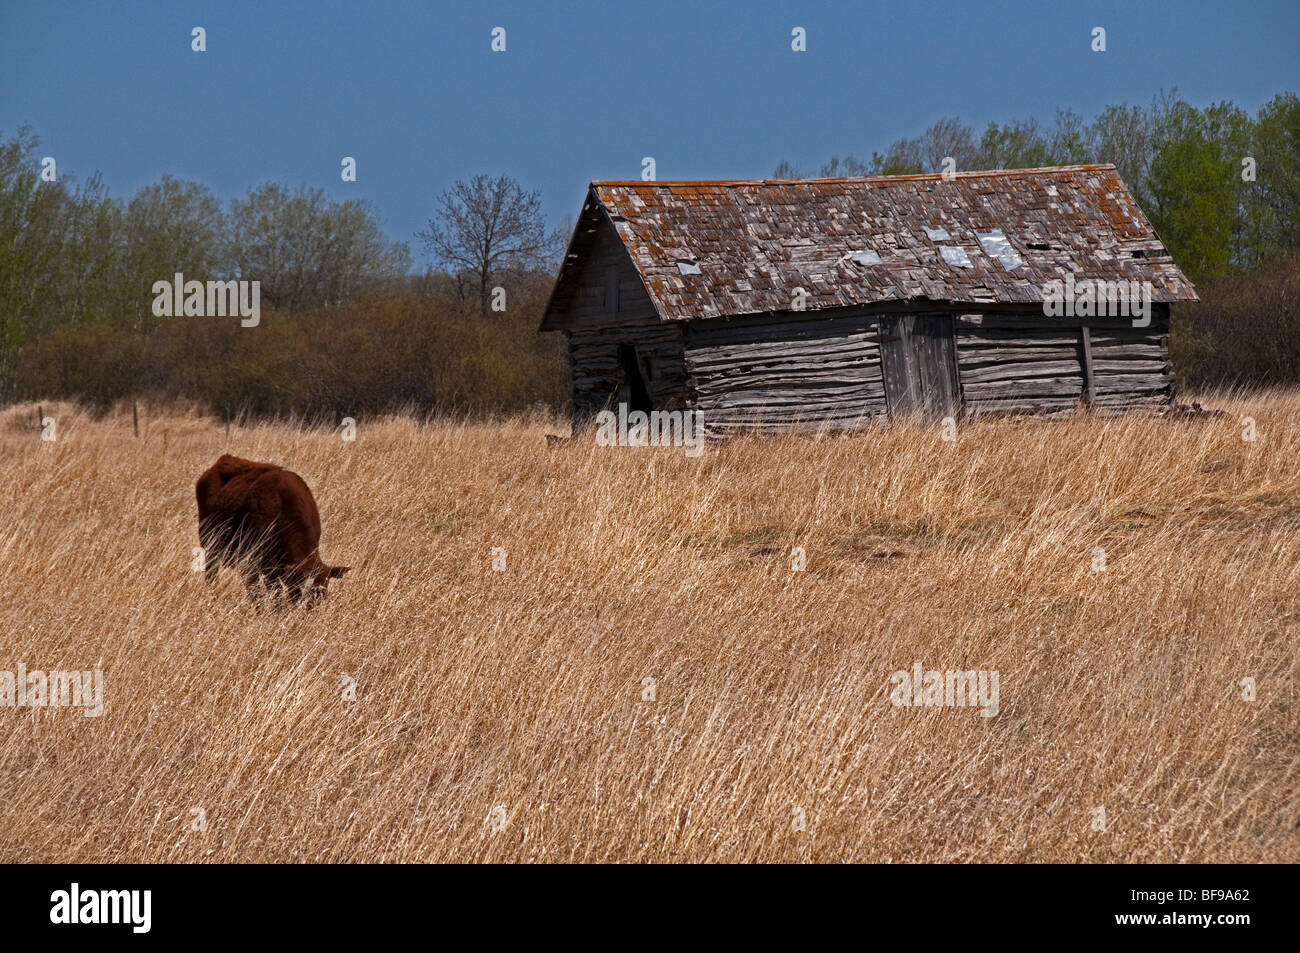 Old Cabin and cow in a hay field.  The hay shows the tilt due to prevailing wind - Stock Image